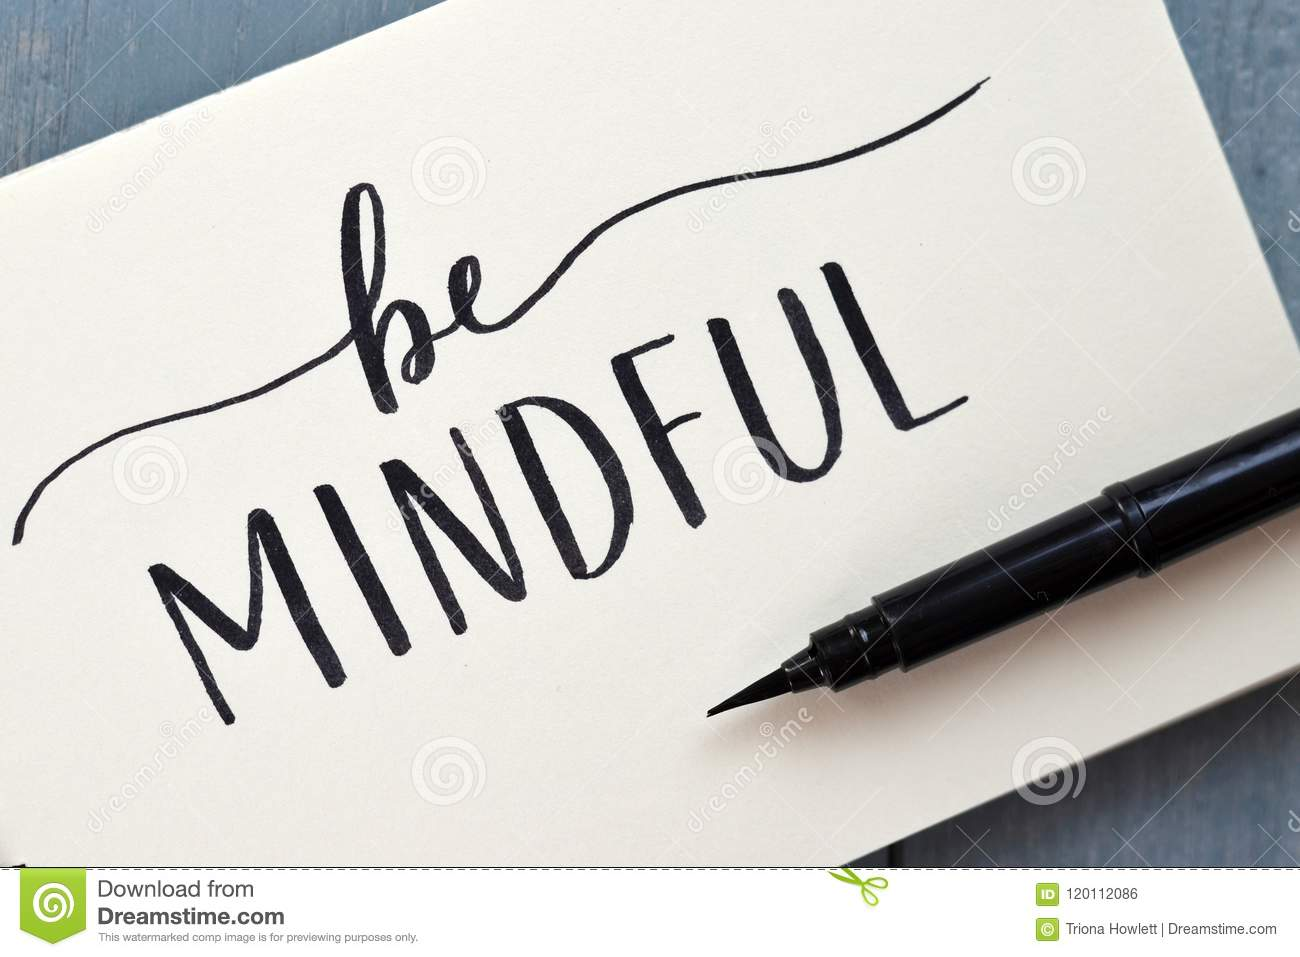 BE MINDFUL hand-lettered in notepad with brush pen